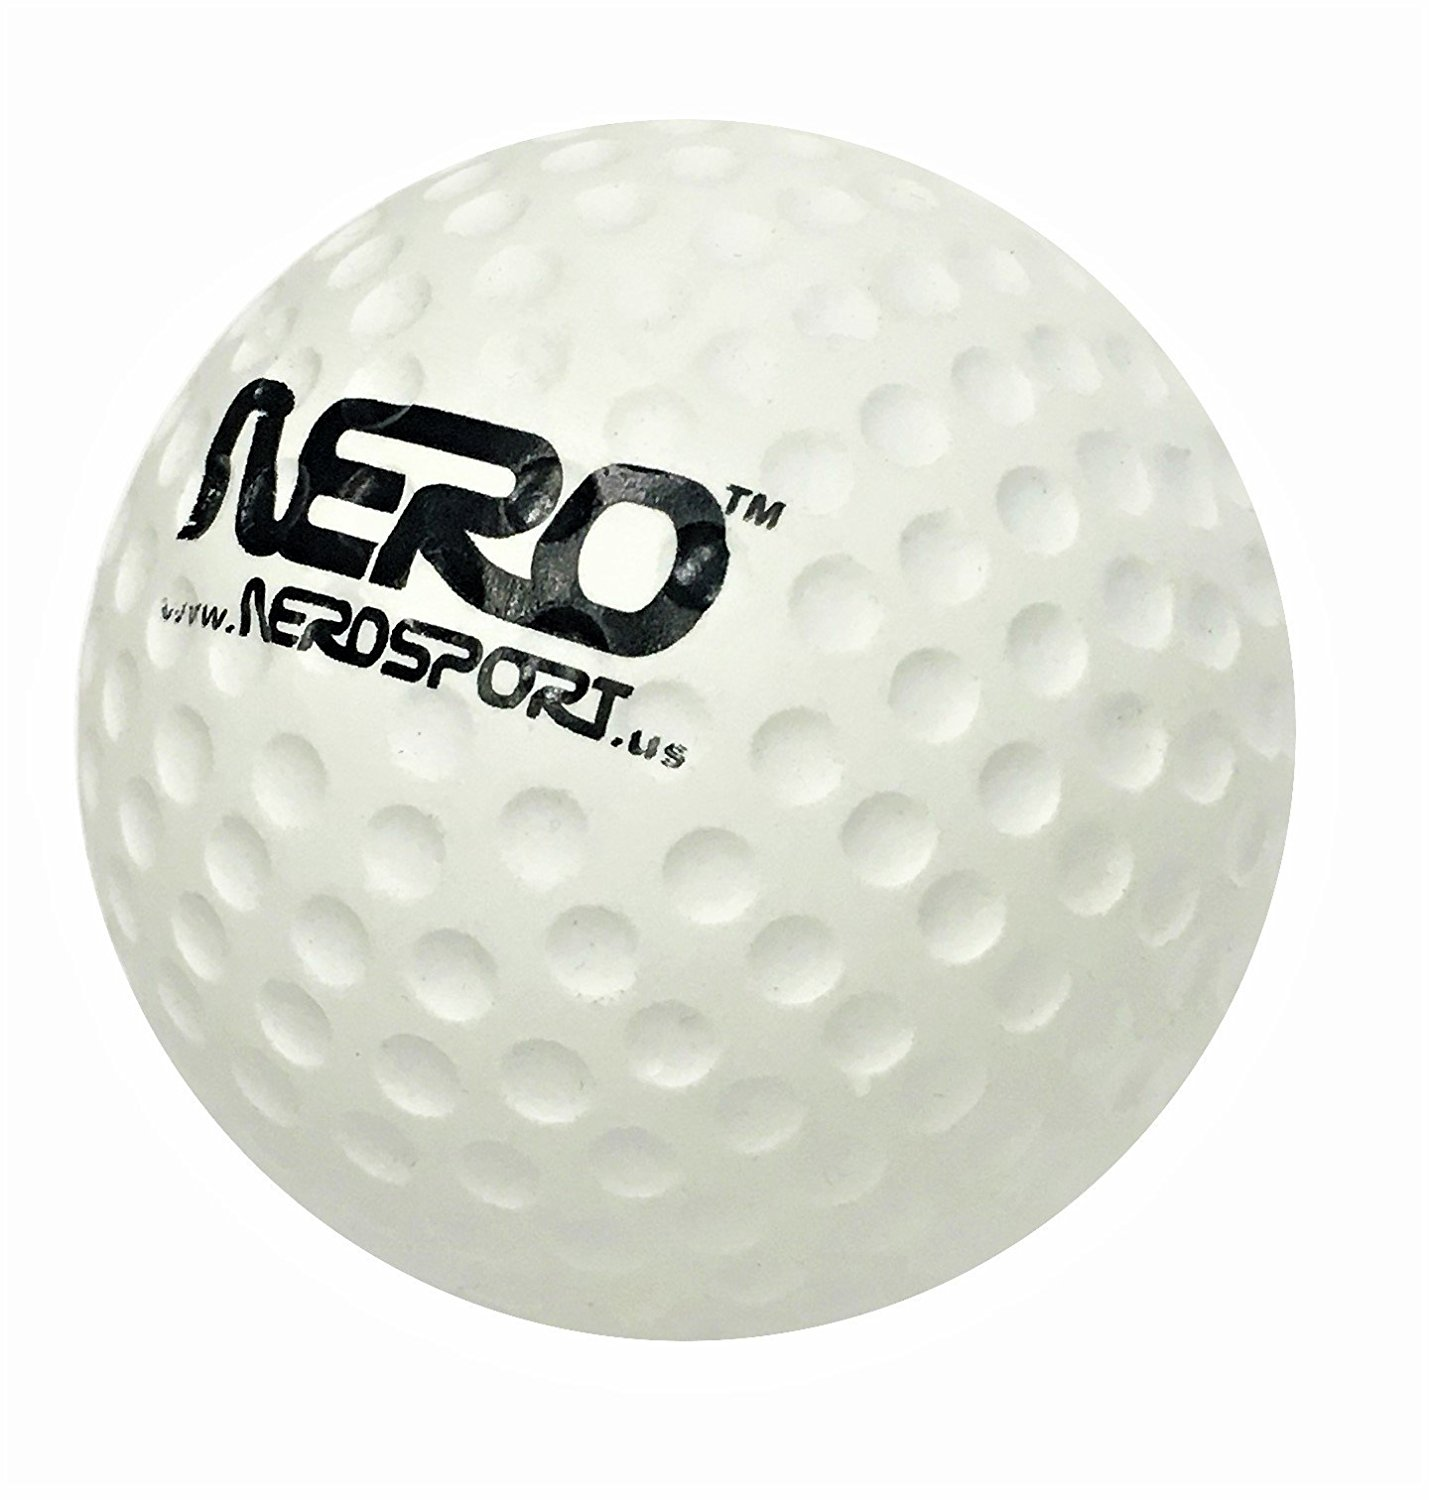 Nero NS-RS High Bounce Rubber Toy Golf Ball Style 2.5 inch Skills Development Toy Great For the Streets Park Back Yard Agility Ball Bulk Price Birthdays Gifts Summer Ball